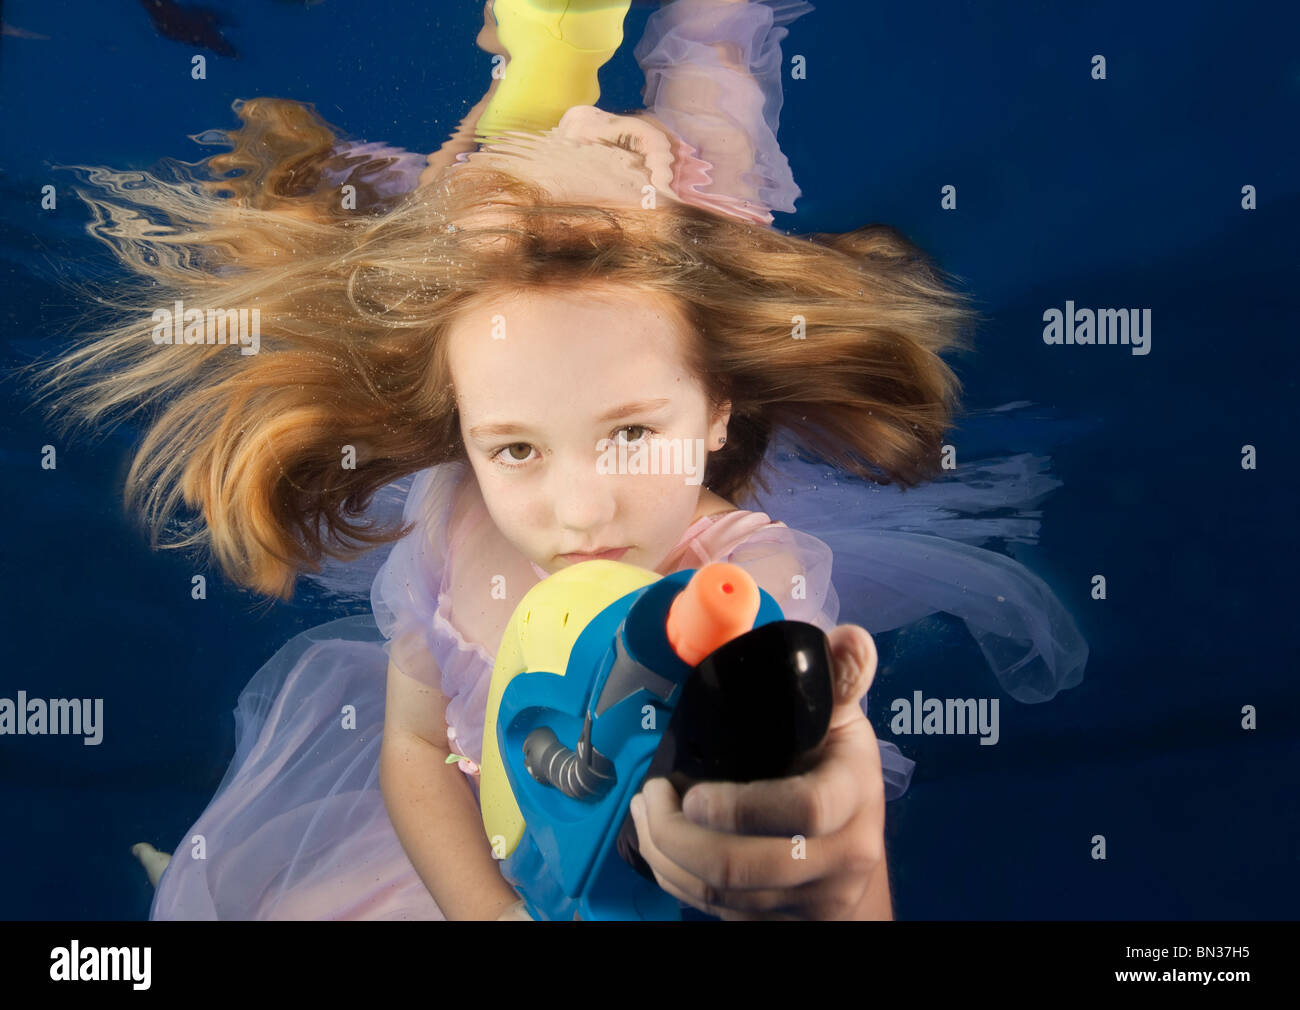 Bollywood nude sex